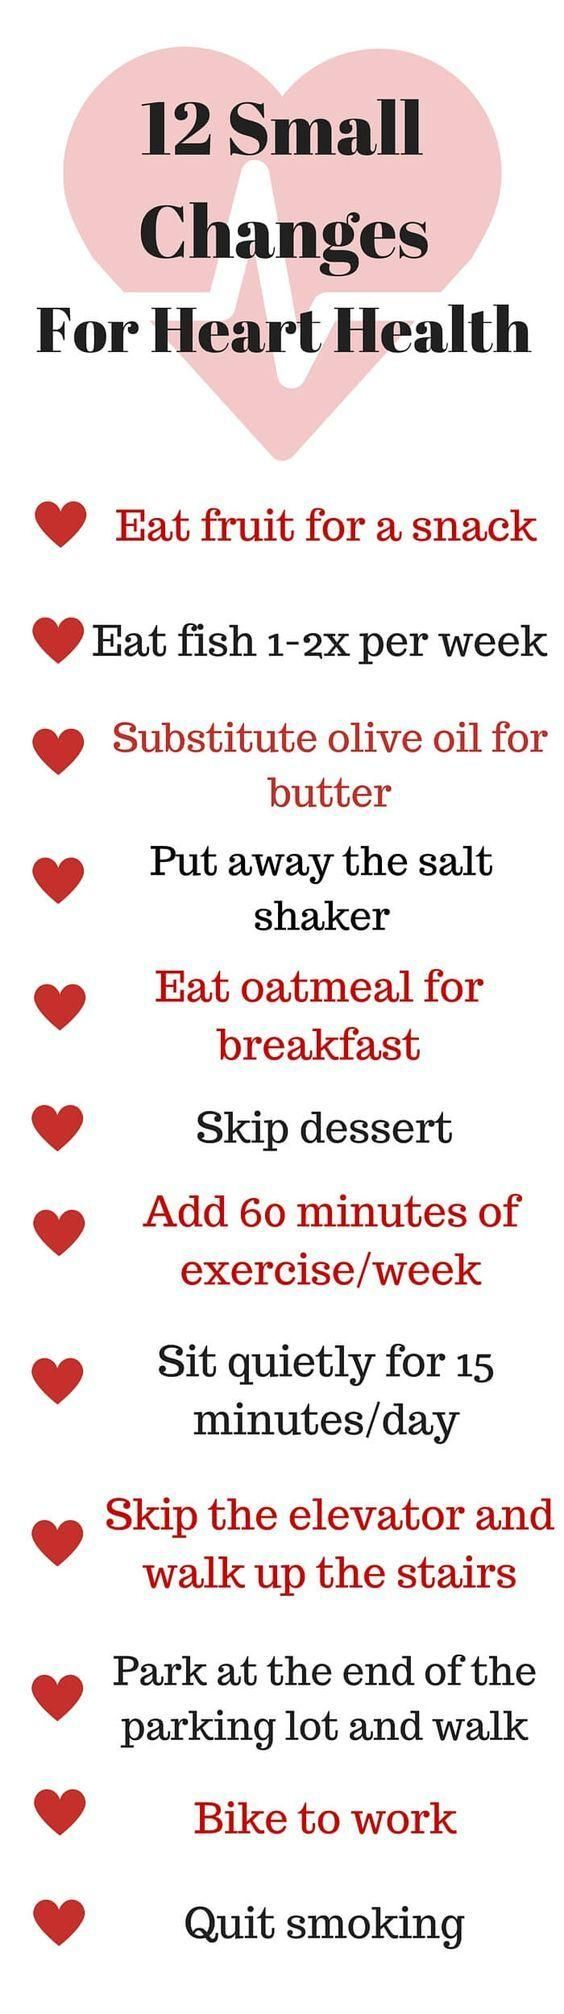 Control is essential to balanced and healthy diet. Read http://gelaf.info/EffectiveWeightLossGuide